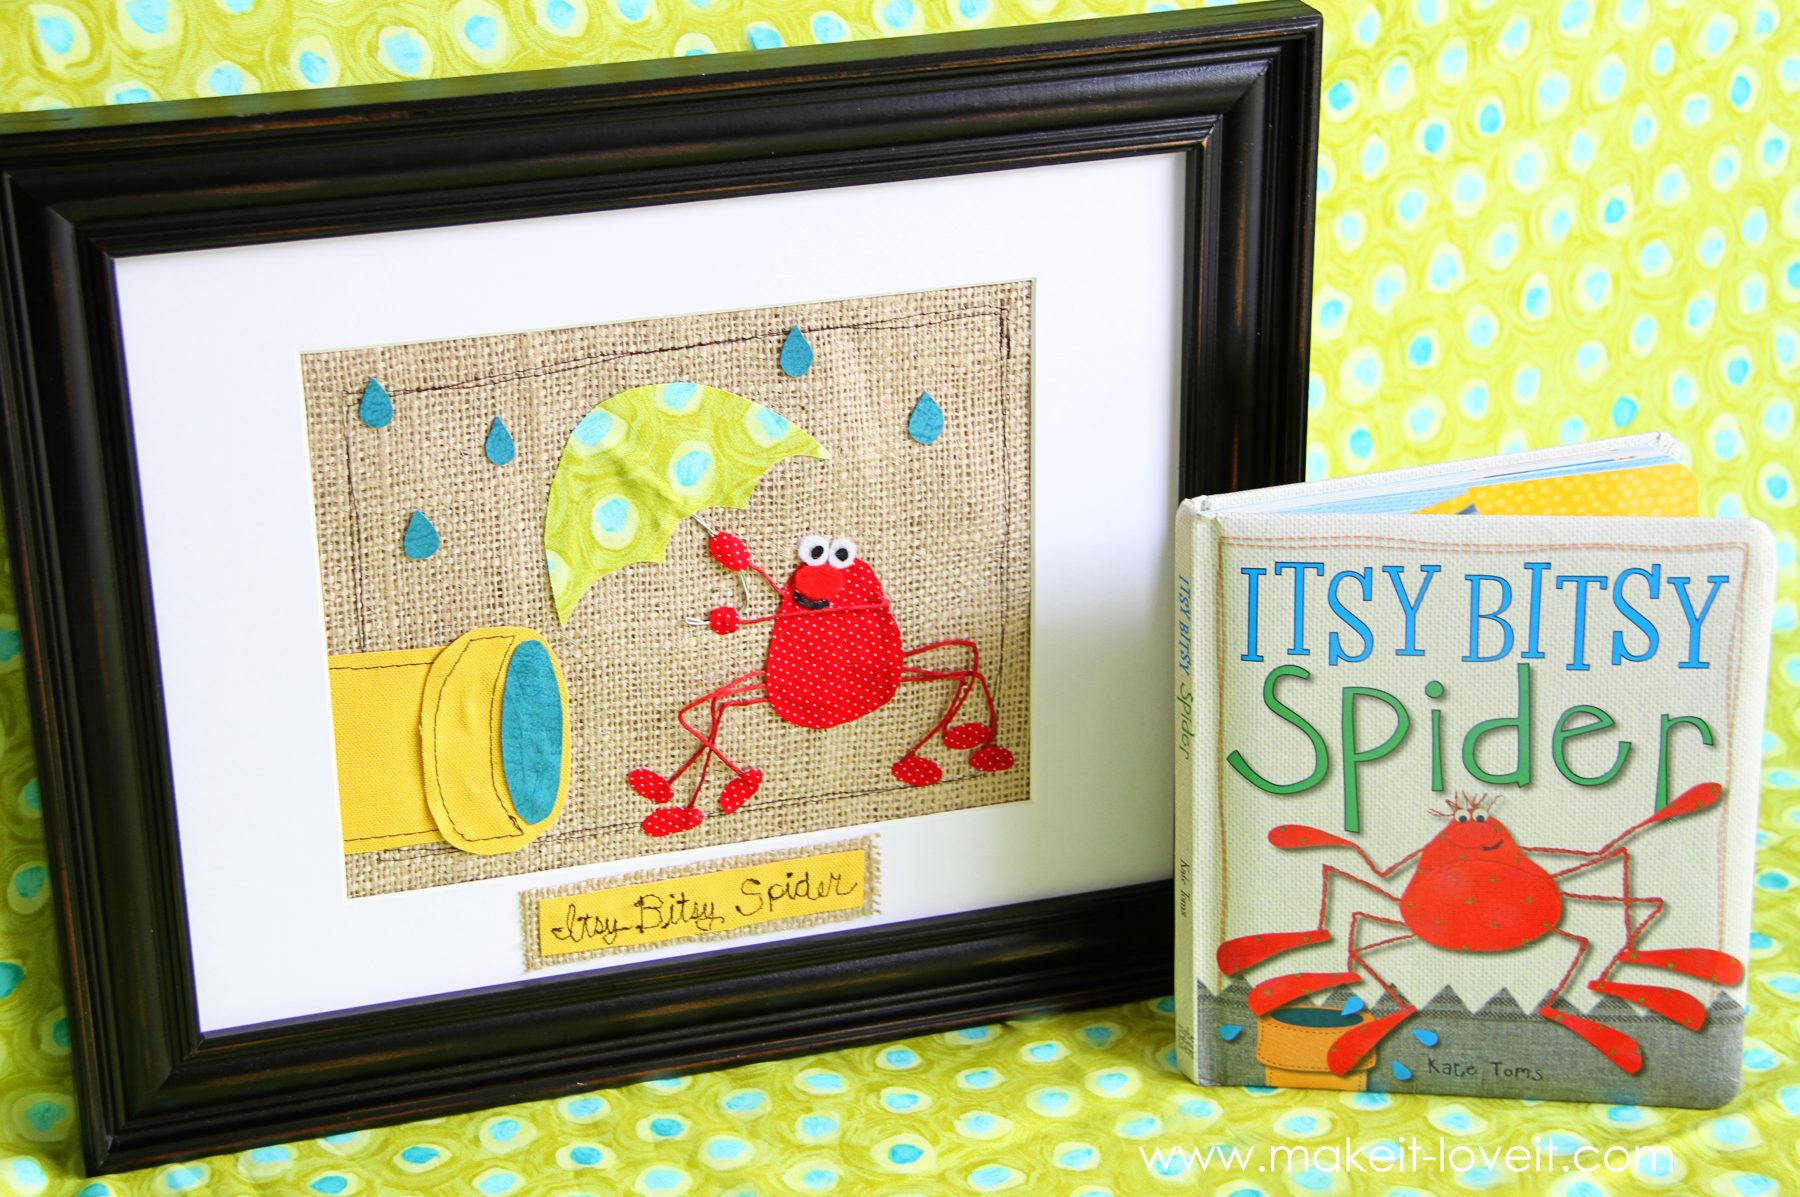 Frame a Scene from a Children's Book: Guest Posting over on 'No Big Dill' today